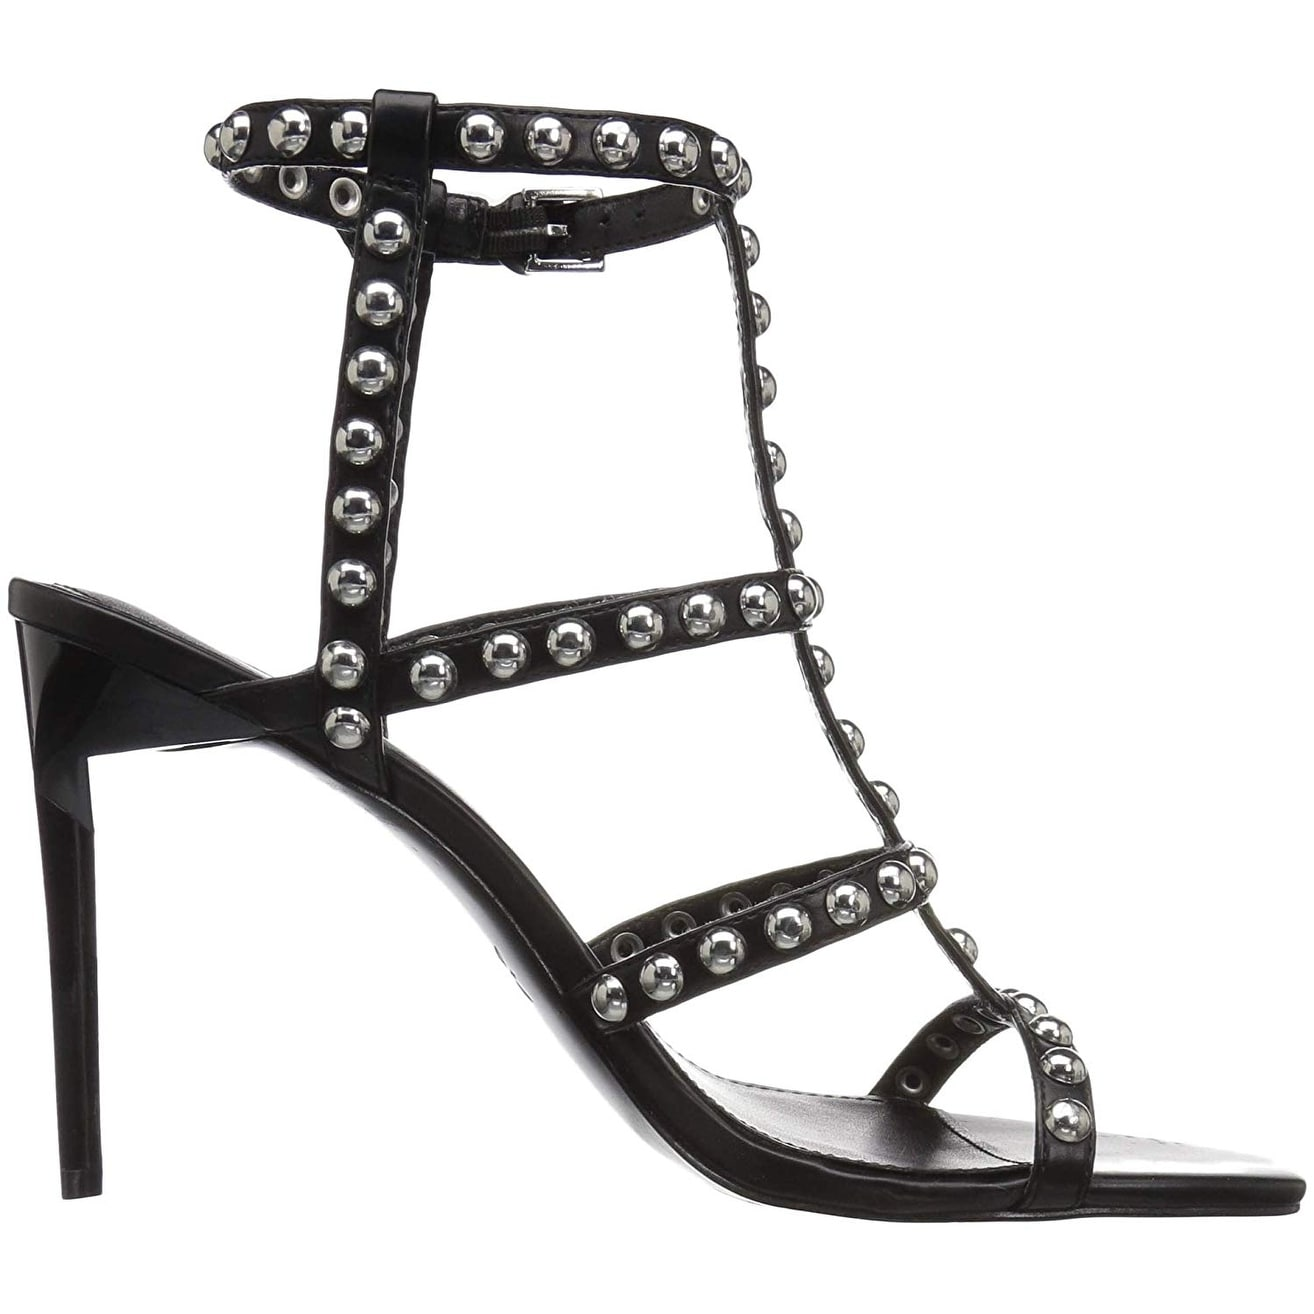 0a84444a7a7 Shop BCBGeneration Women s Issa Heeled Sandal - Free Shipping Today -  Overstock - 27469742